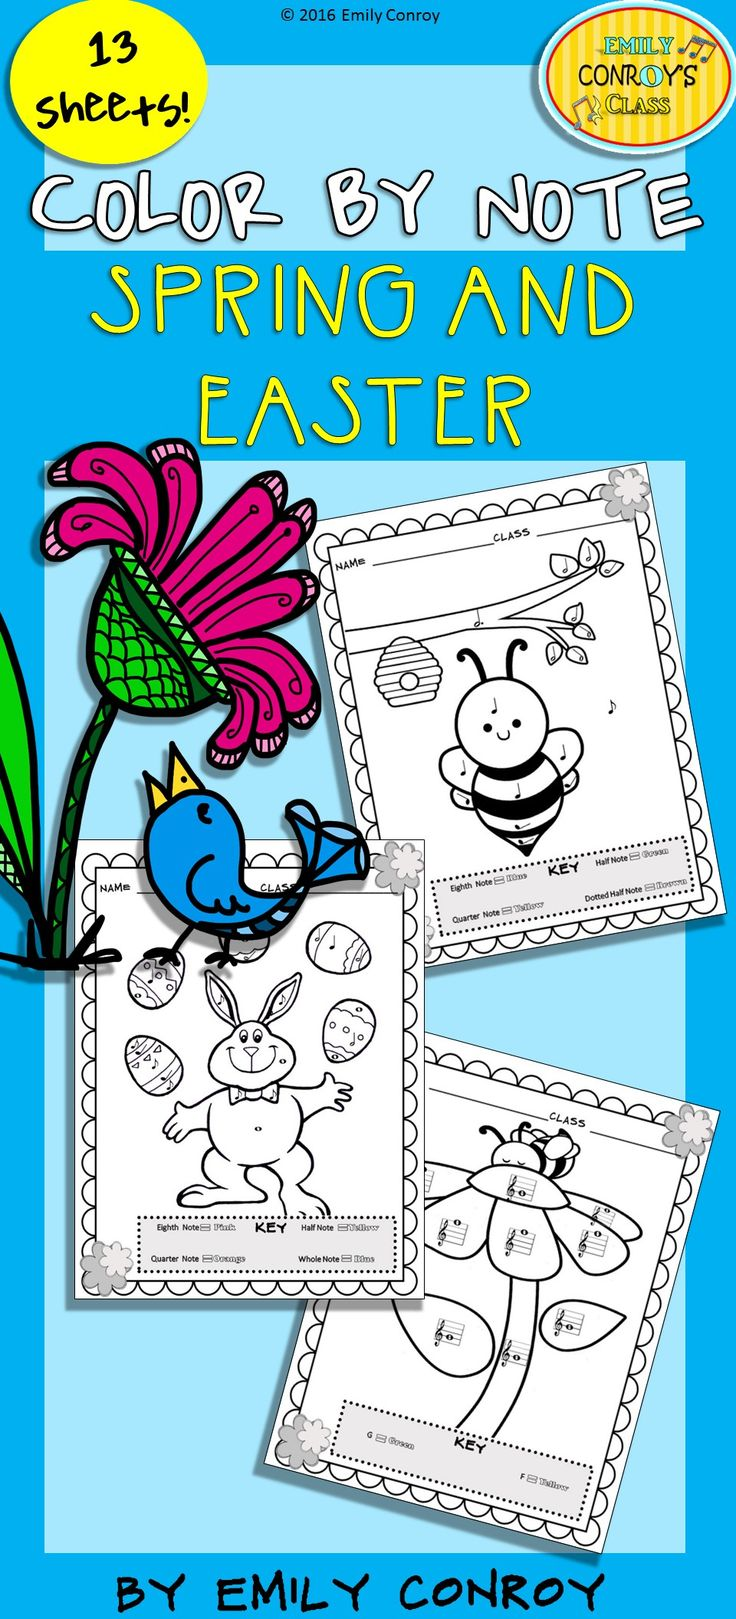 Spring coloring pages for upper elementary - Color By Note Spring Easter Contains 13 Music Coloring Sheets For Elementary Music Students 5 Of The Coloring Pages Are Color By Note 3 Are Color By